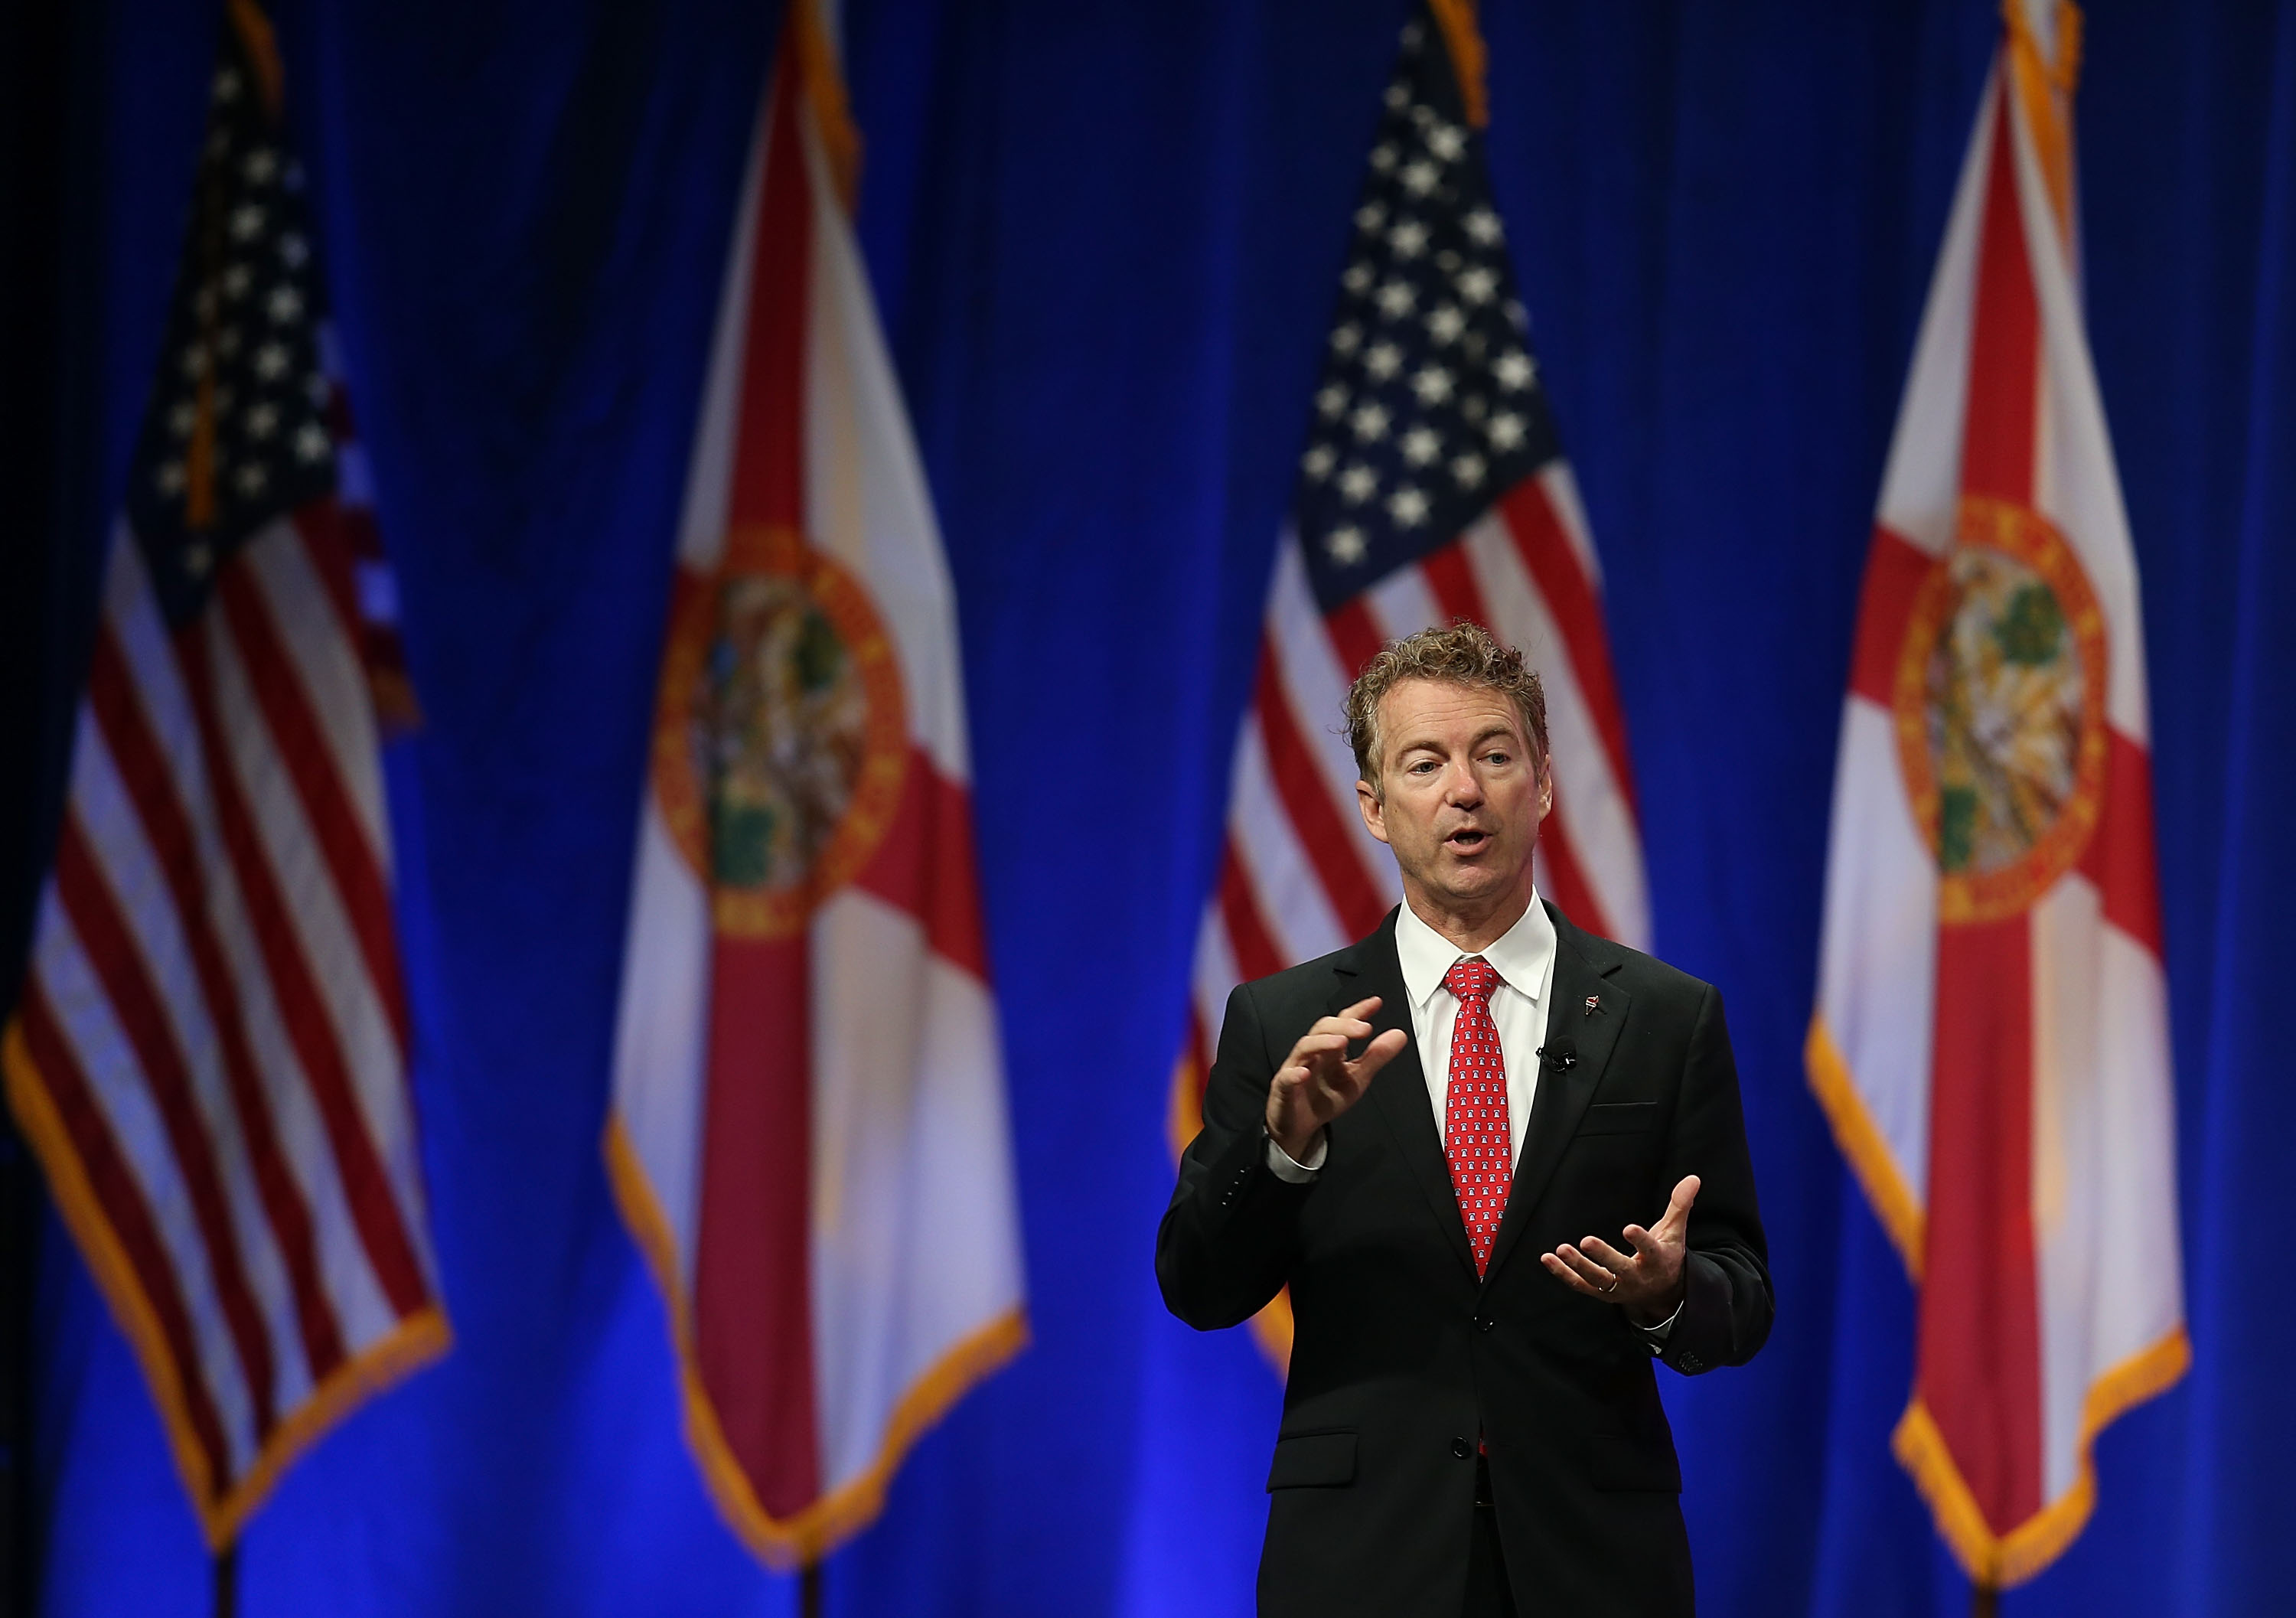 Republican presidential candidate Sen. Rand Paul (R-KY)  speaks during the Sunshine Summit conference being held at the Rosen Shingle Creek in Orlando, Florida, on Nov. 14, 2015.